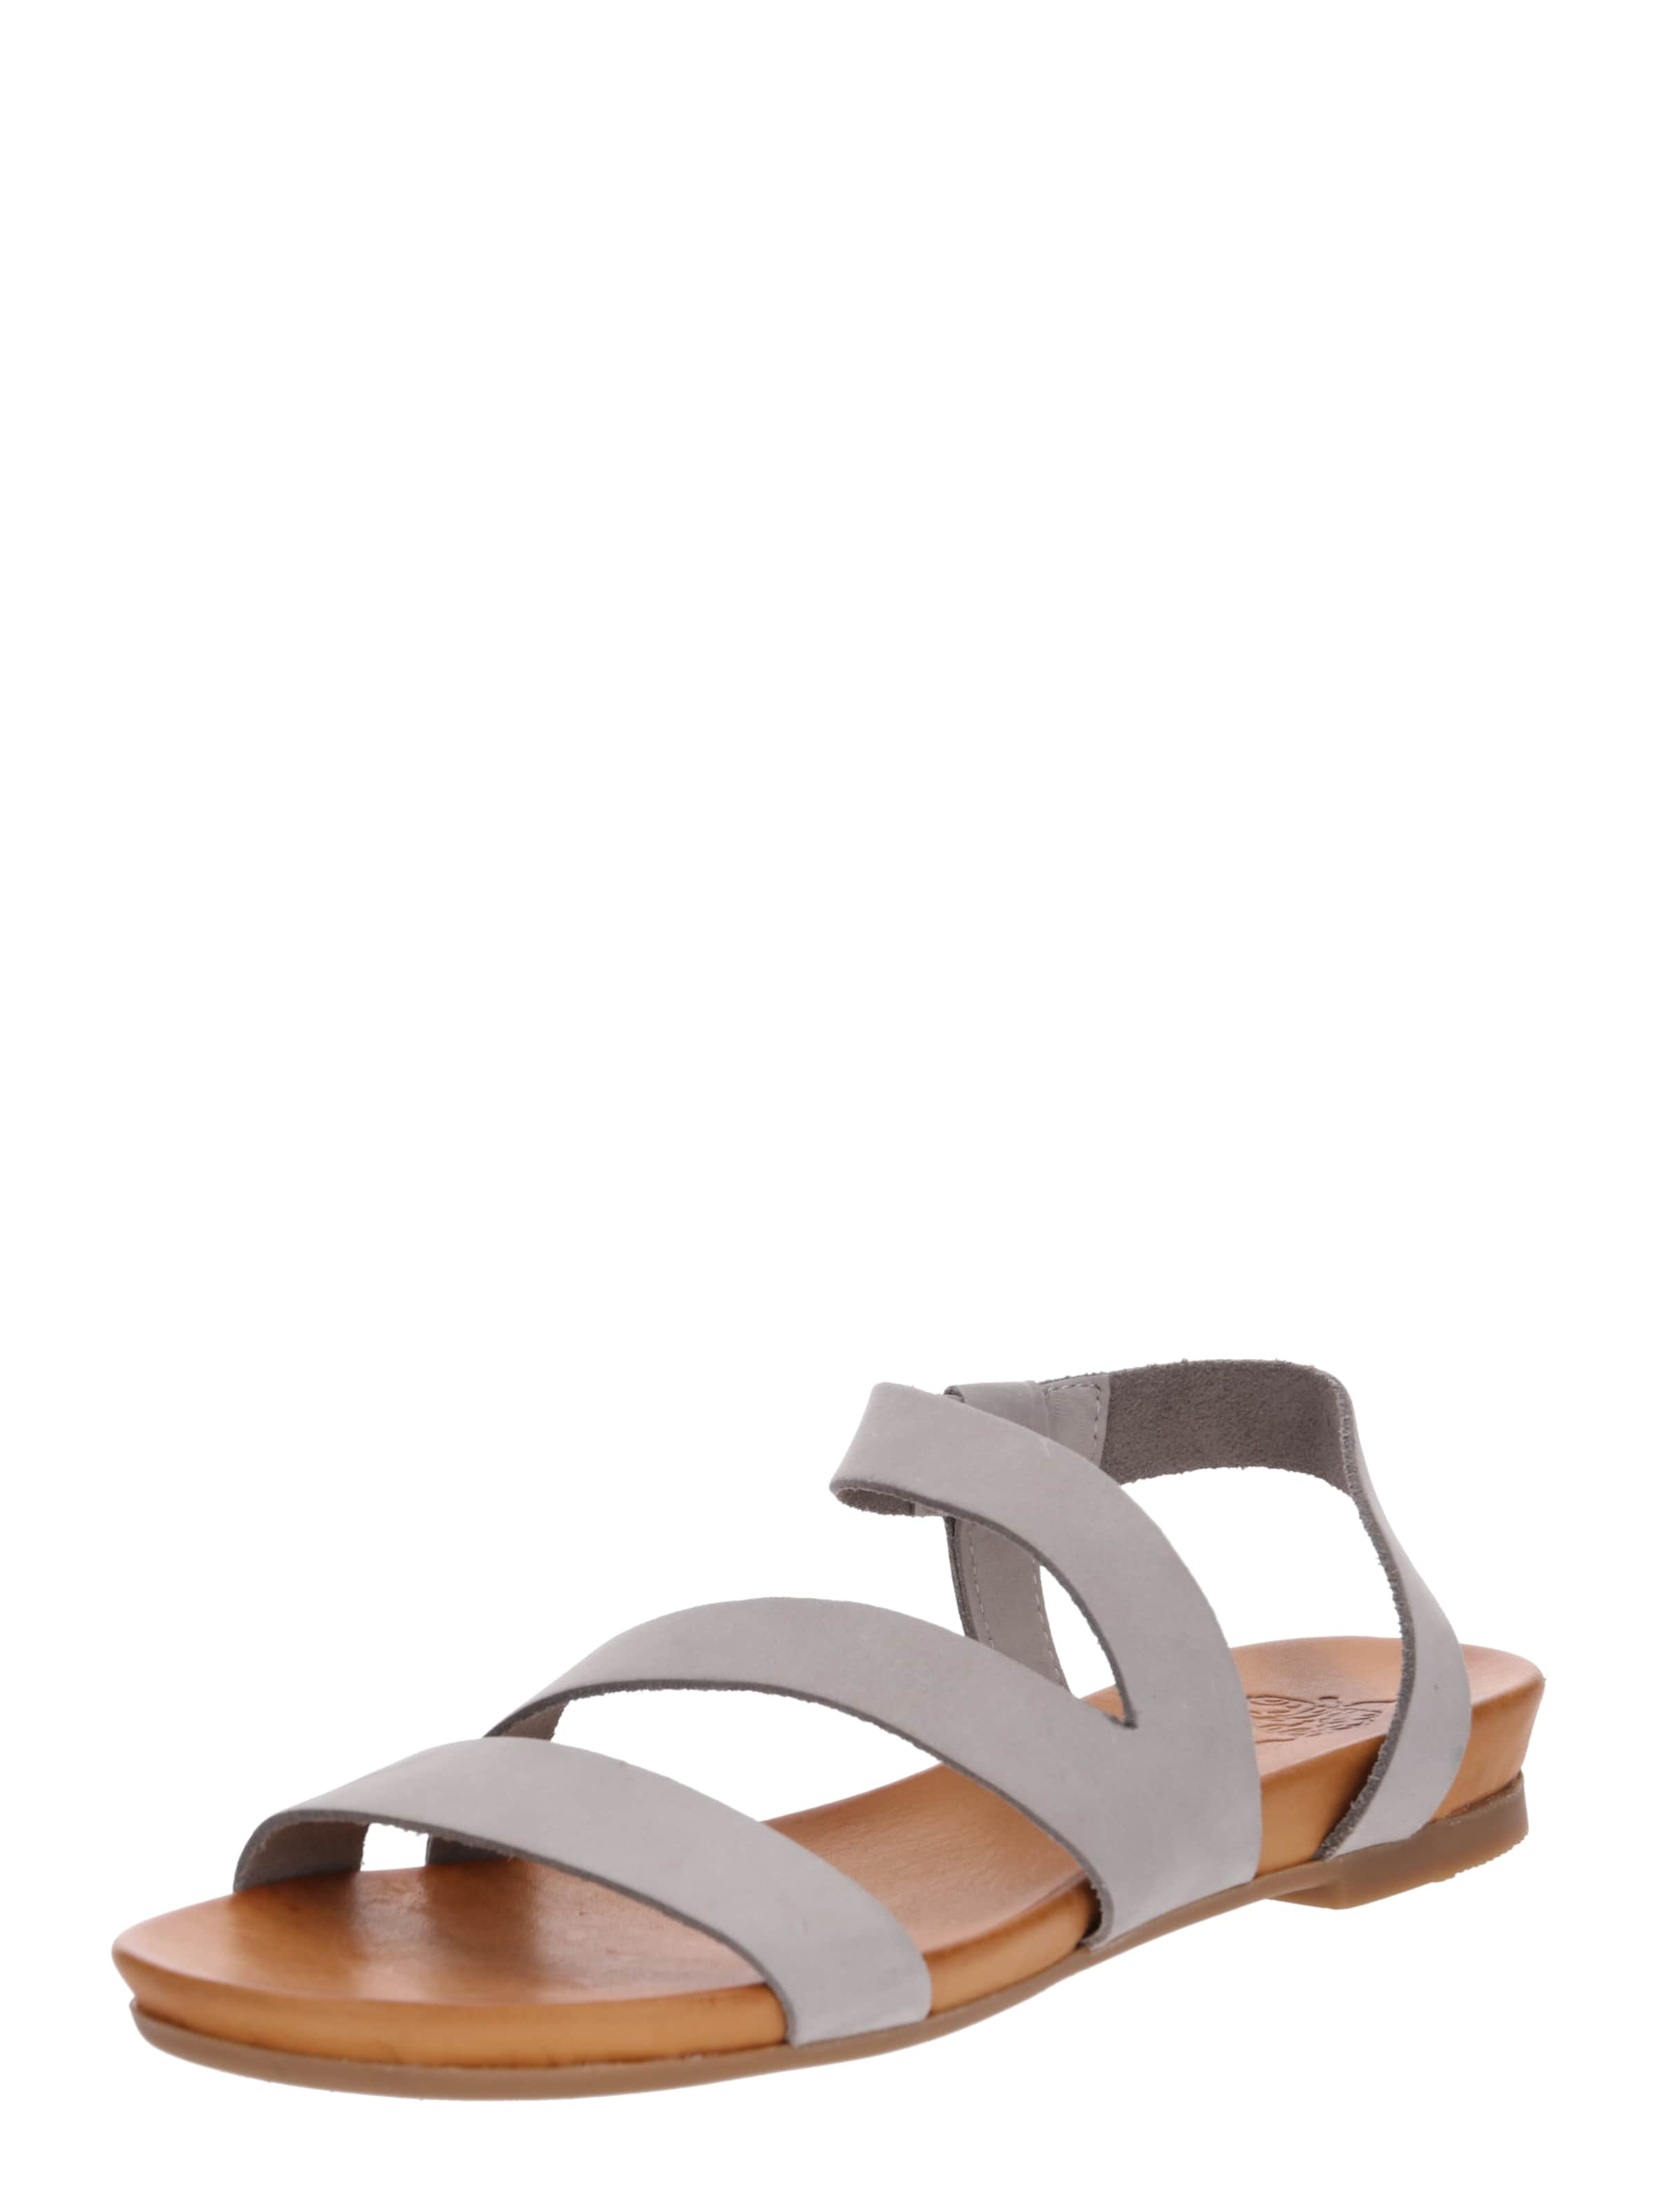 Apple of Eden Sandalen 'Dena' in beige   hellgrau